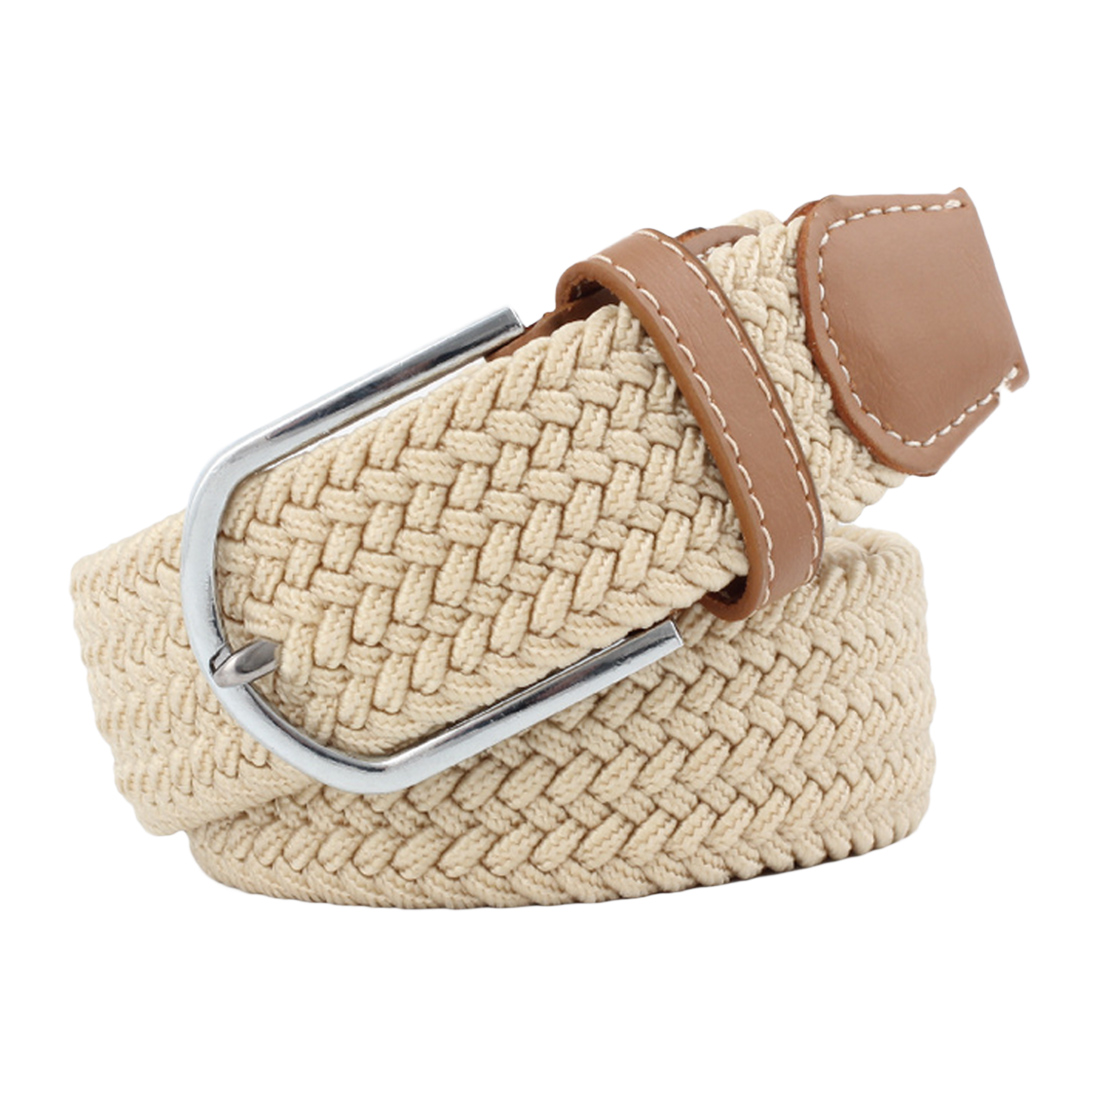 2018 New Women Belt Elastic Fabric Braided Belts for Male & Female Candy Colors New Style Belt Accessories Waist Belts